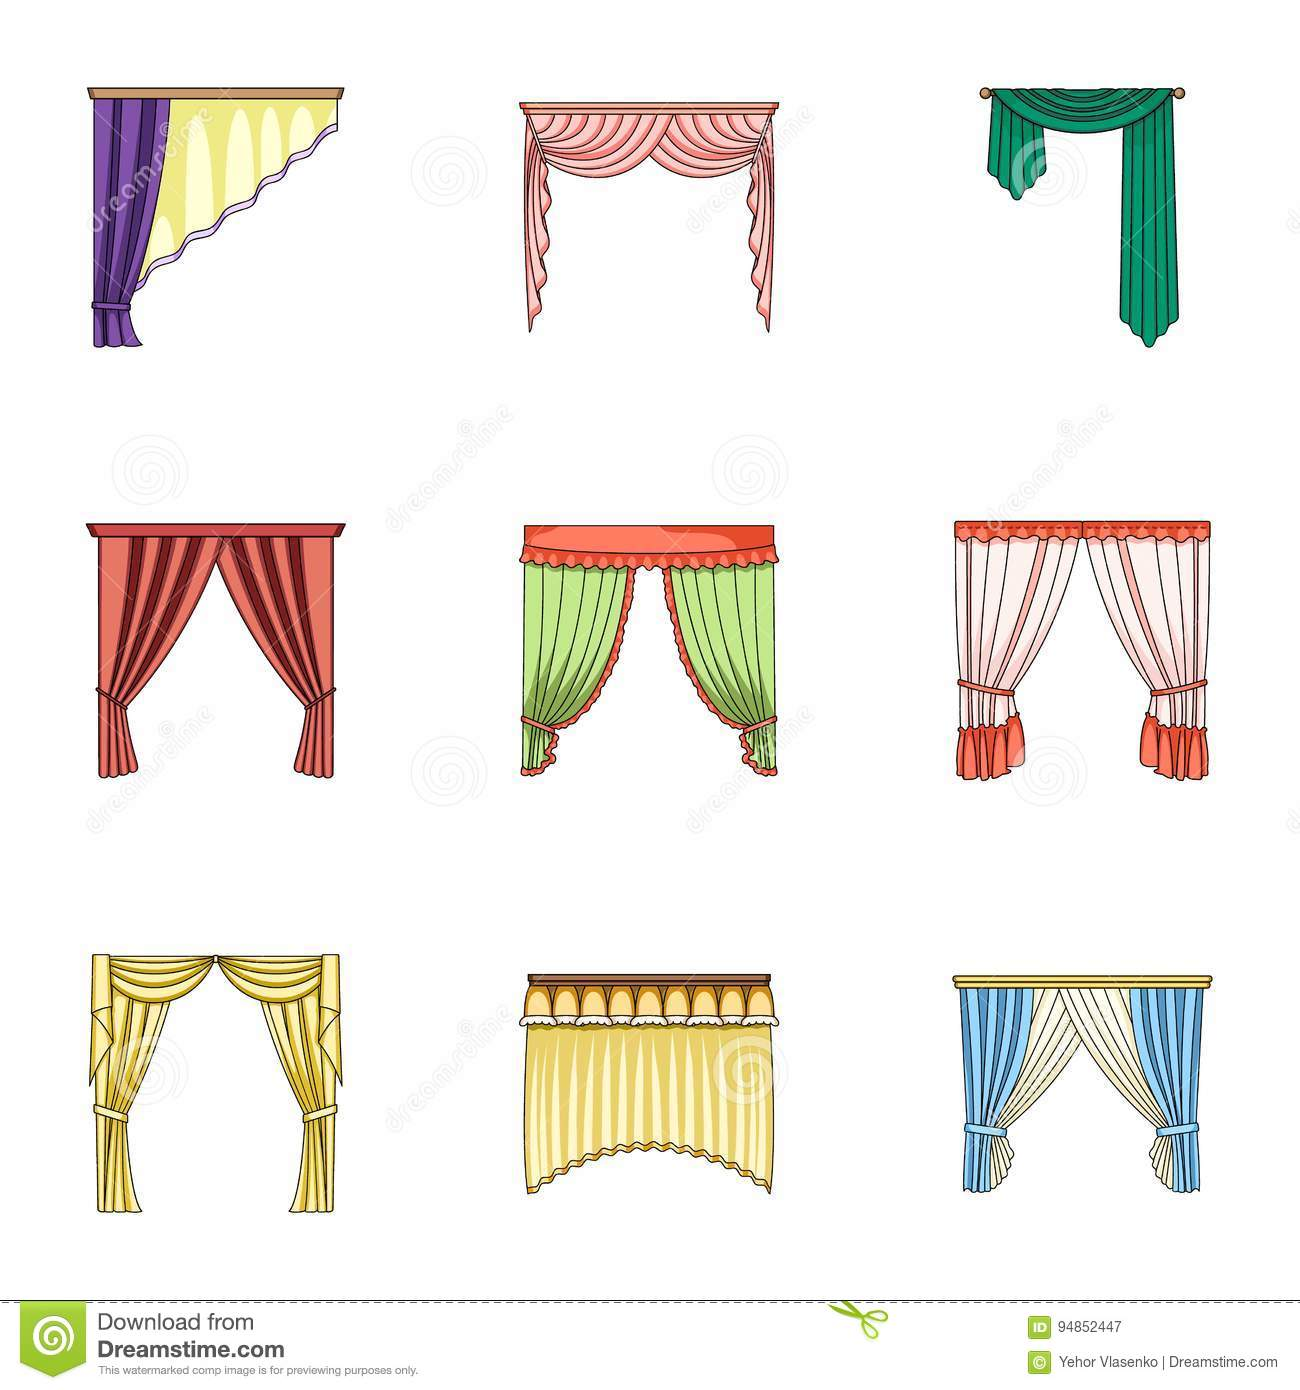 Different Types Of Window Curtainsrtains Set Collection Icons In